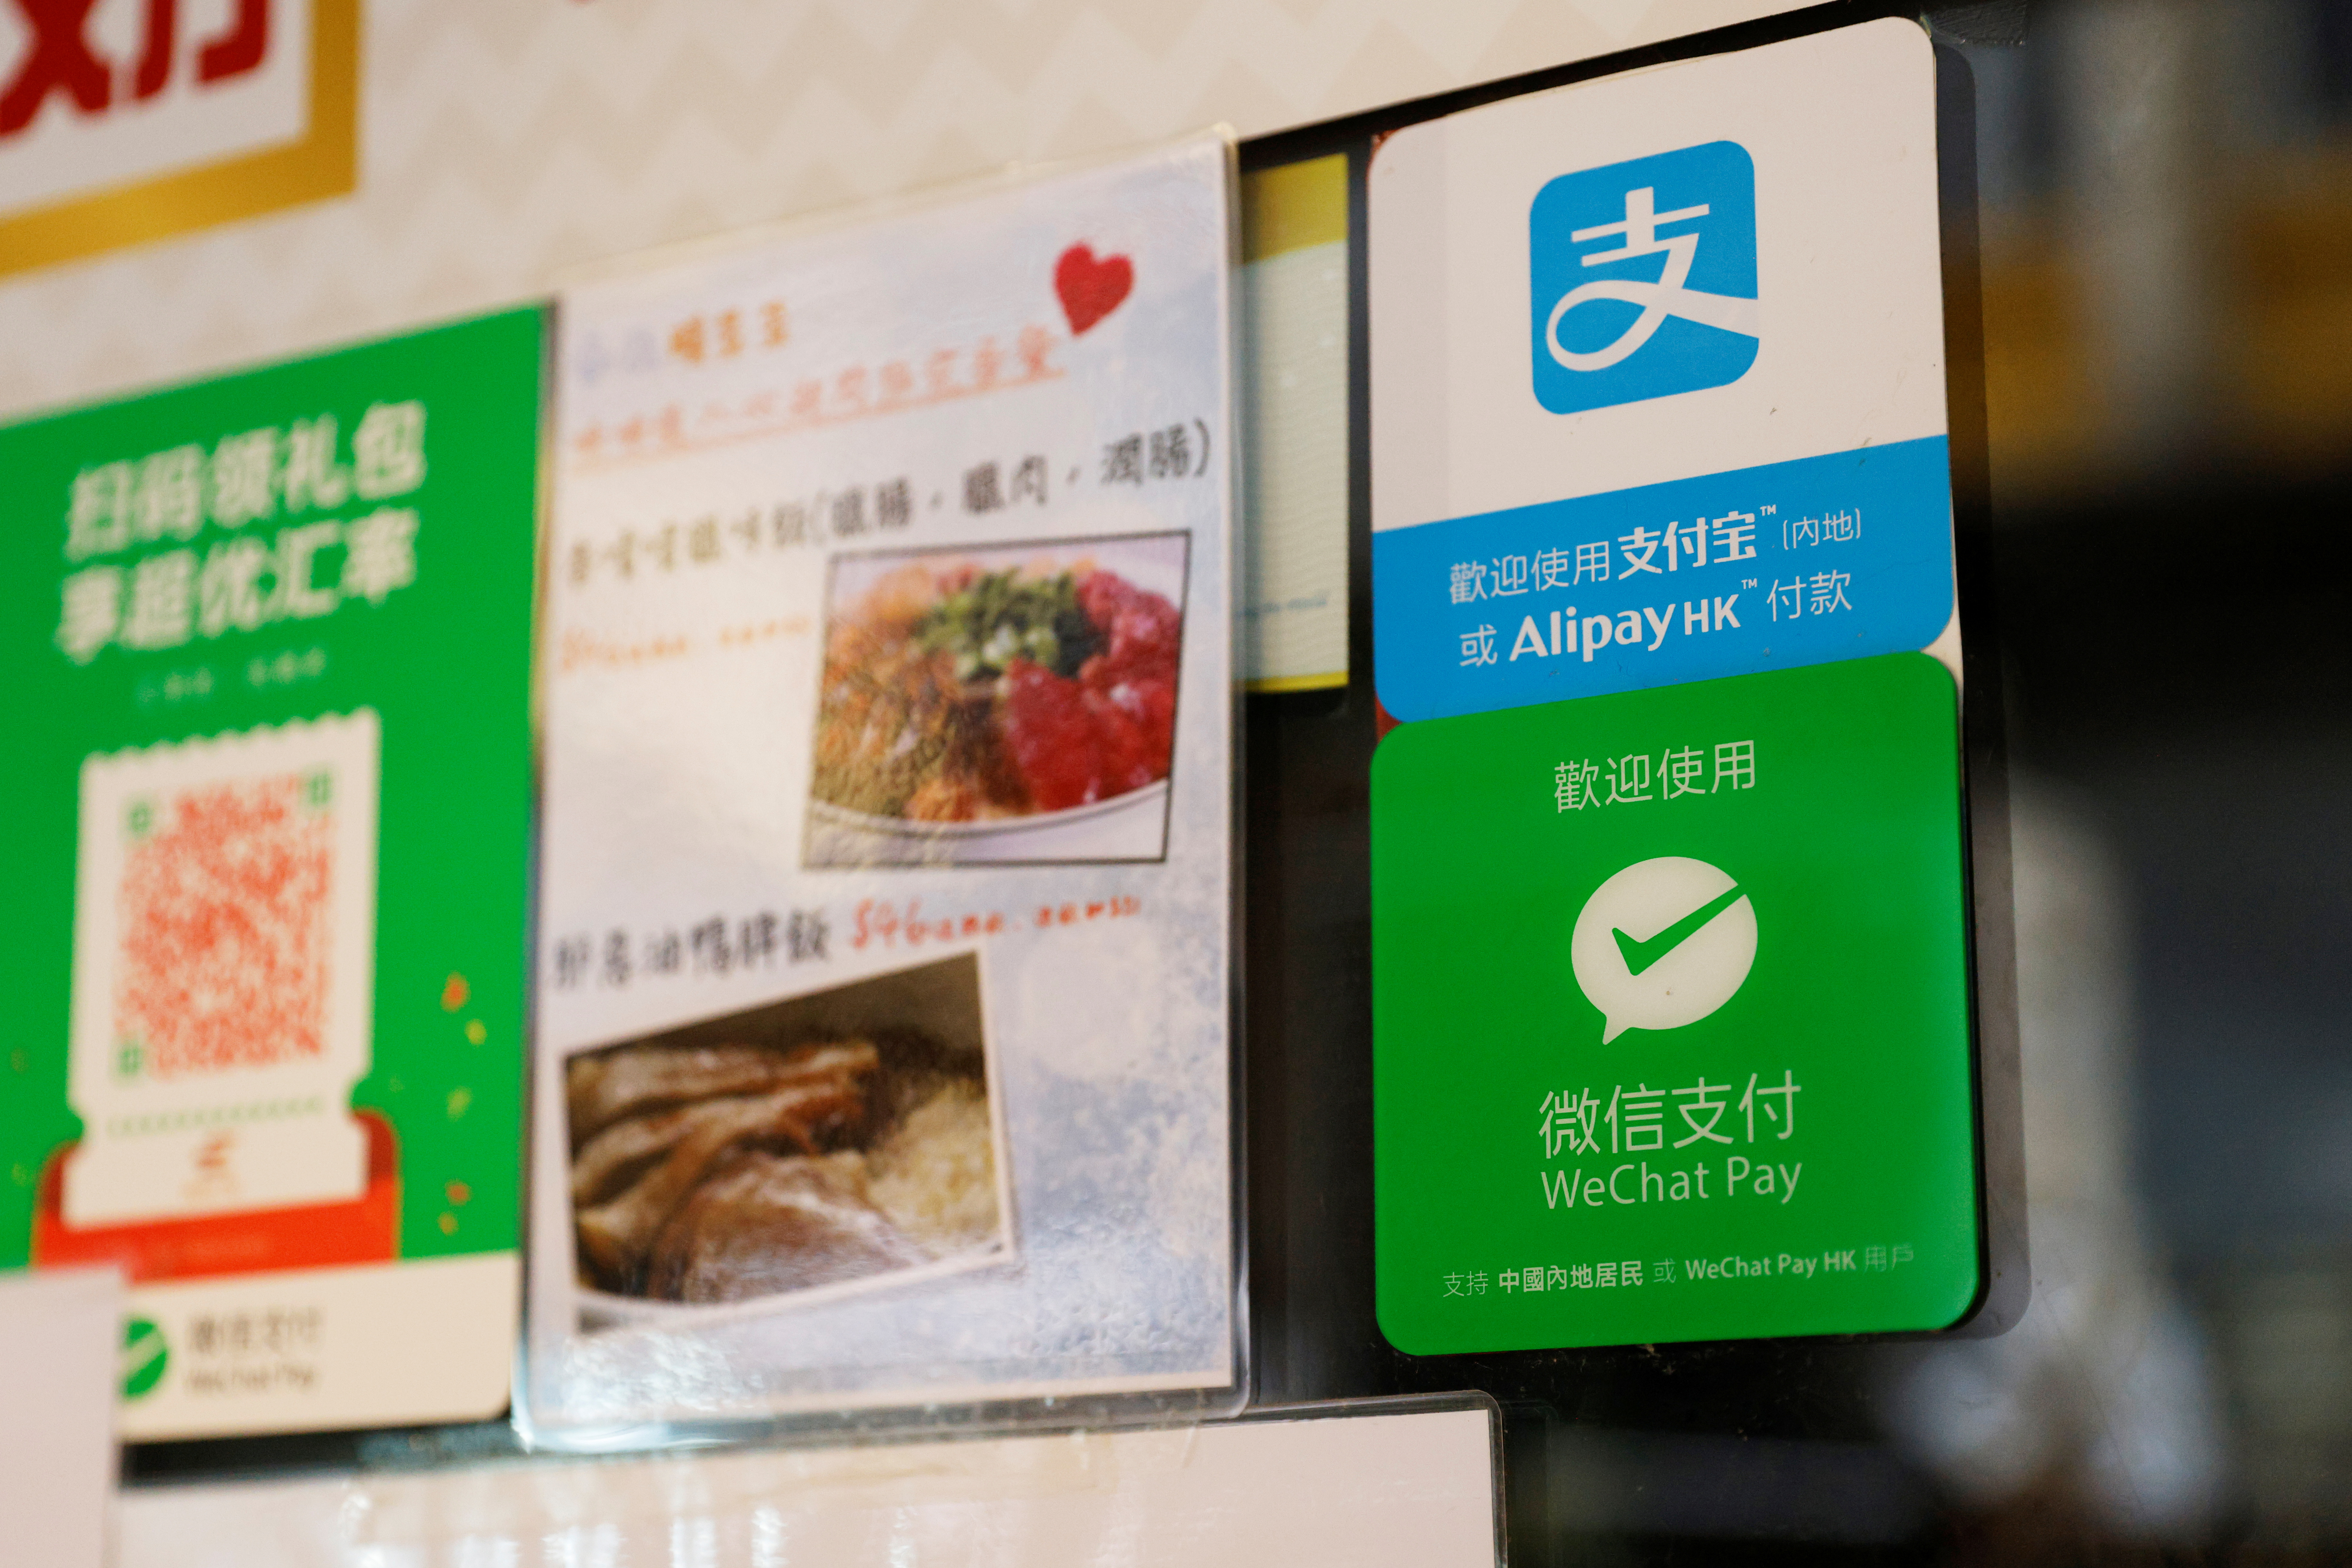 Logos for digital payment services Alipay by Ant Group, an affiliate of Alibaba Group Holding and WeChat Pay by Tencent Holdings are displayed outside a restaurant, in Hong Kong, China November 1, 2020. REUTERS/Tyrone Siu